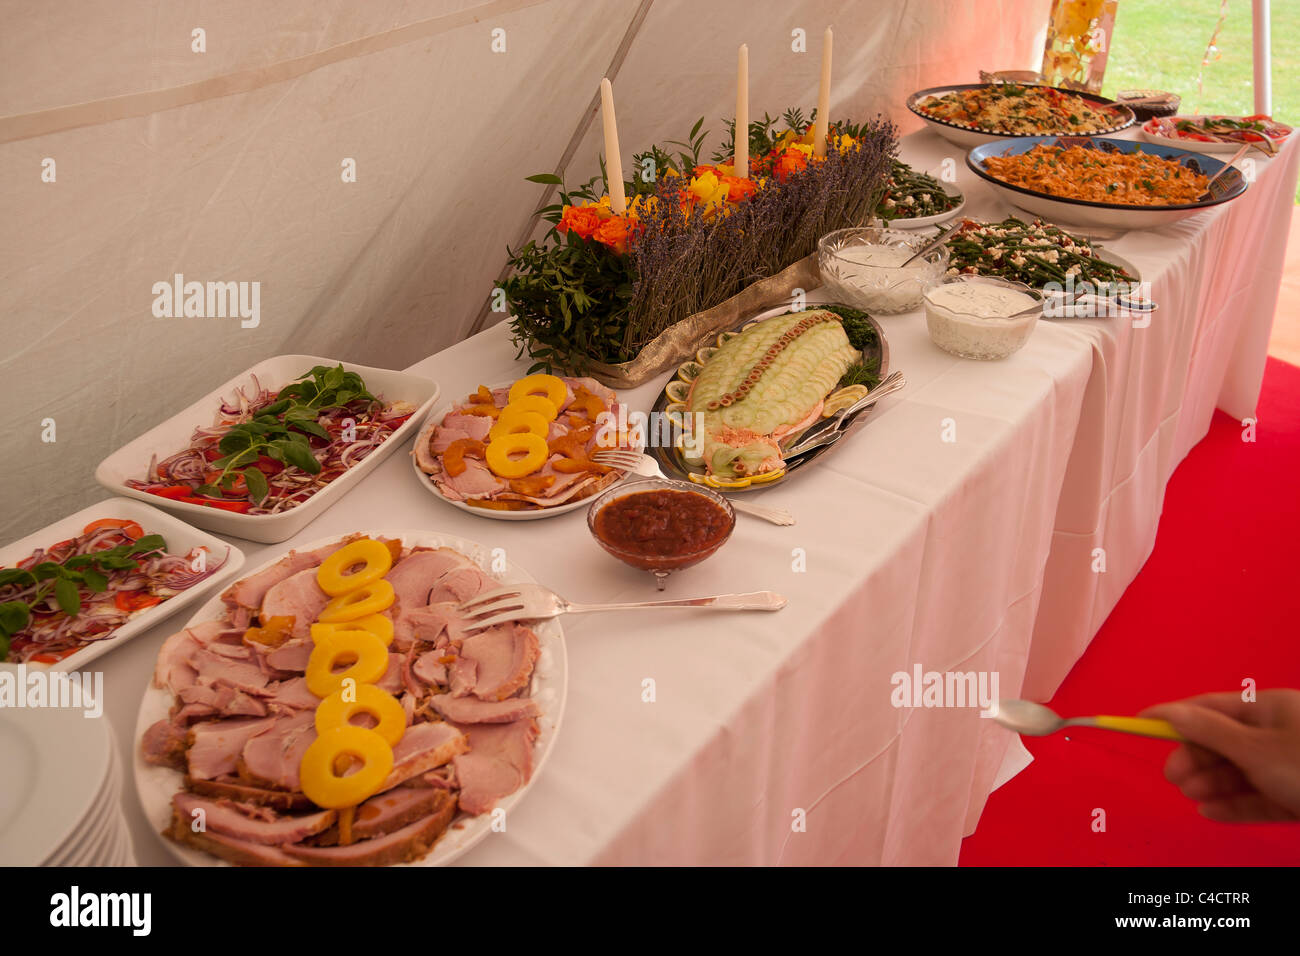 Tables laid out with food for a party in a marquee - Stock Image